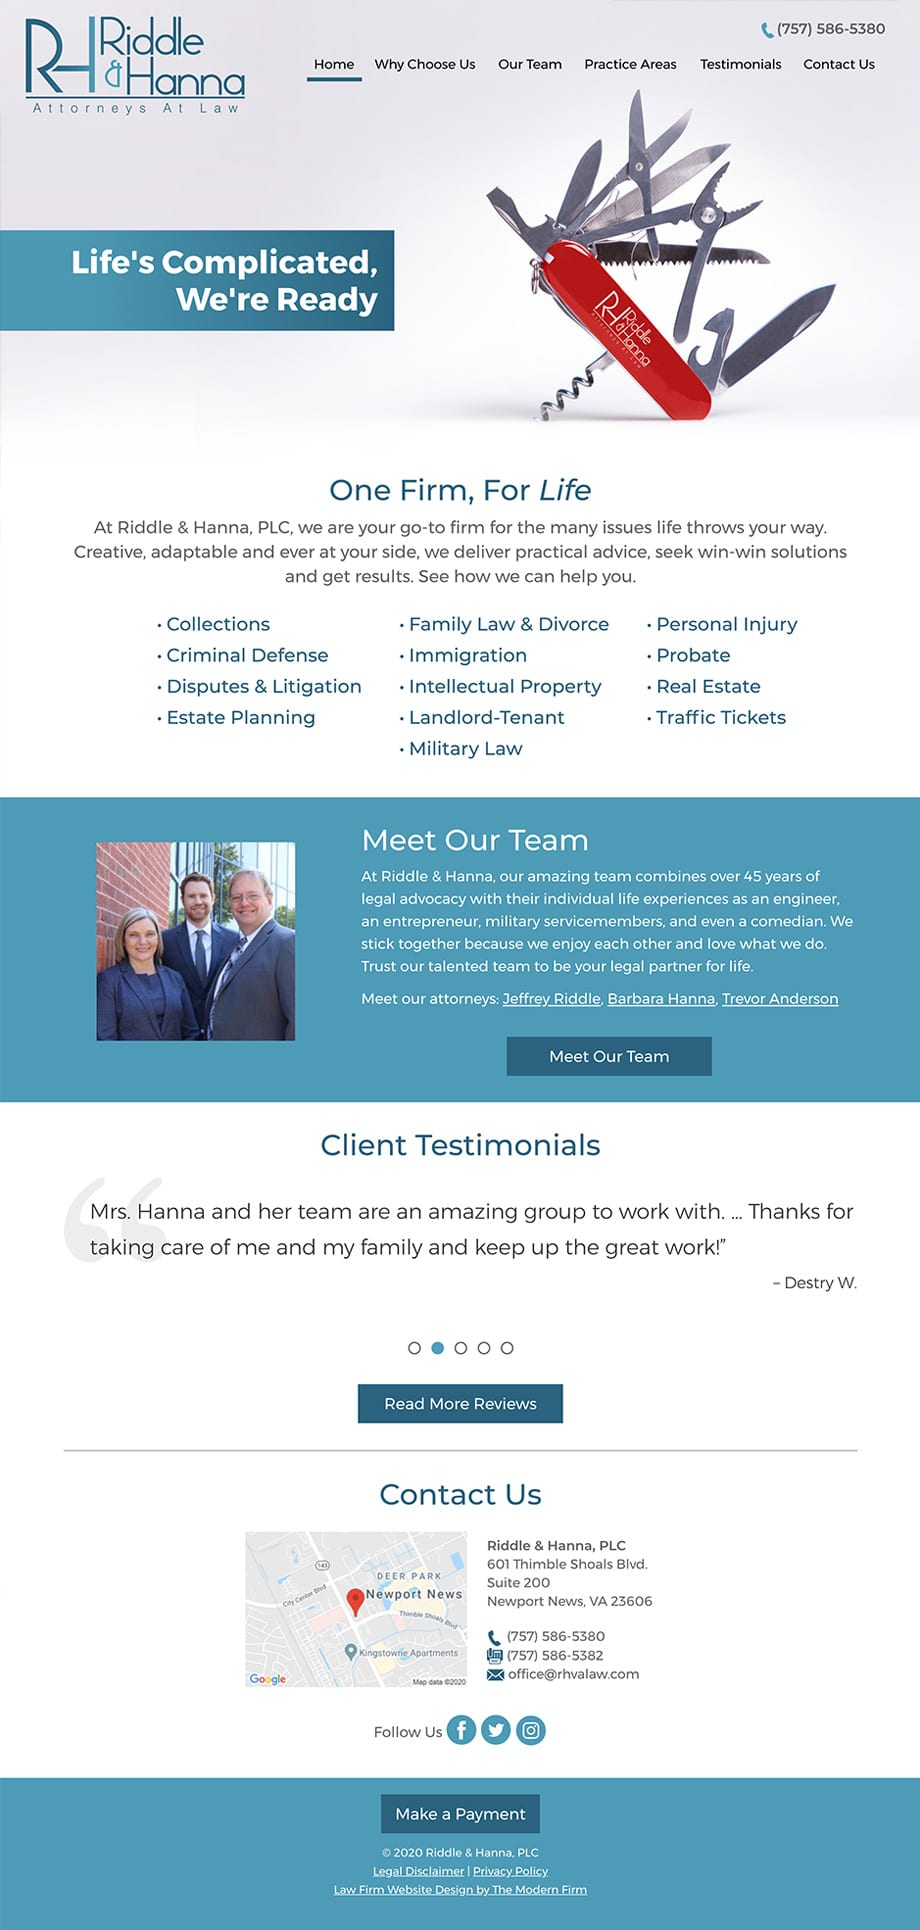 Law Firm Website Design for Riddle & Hanna, PLC